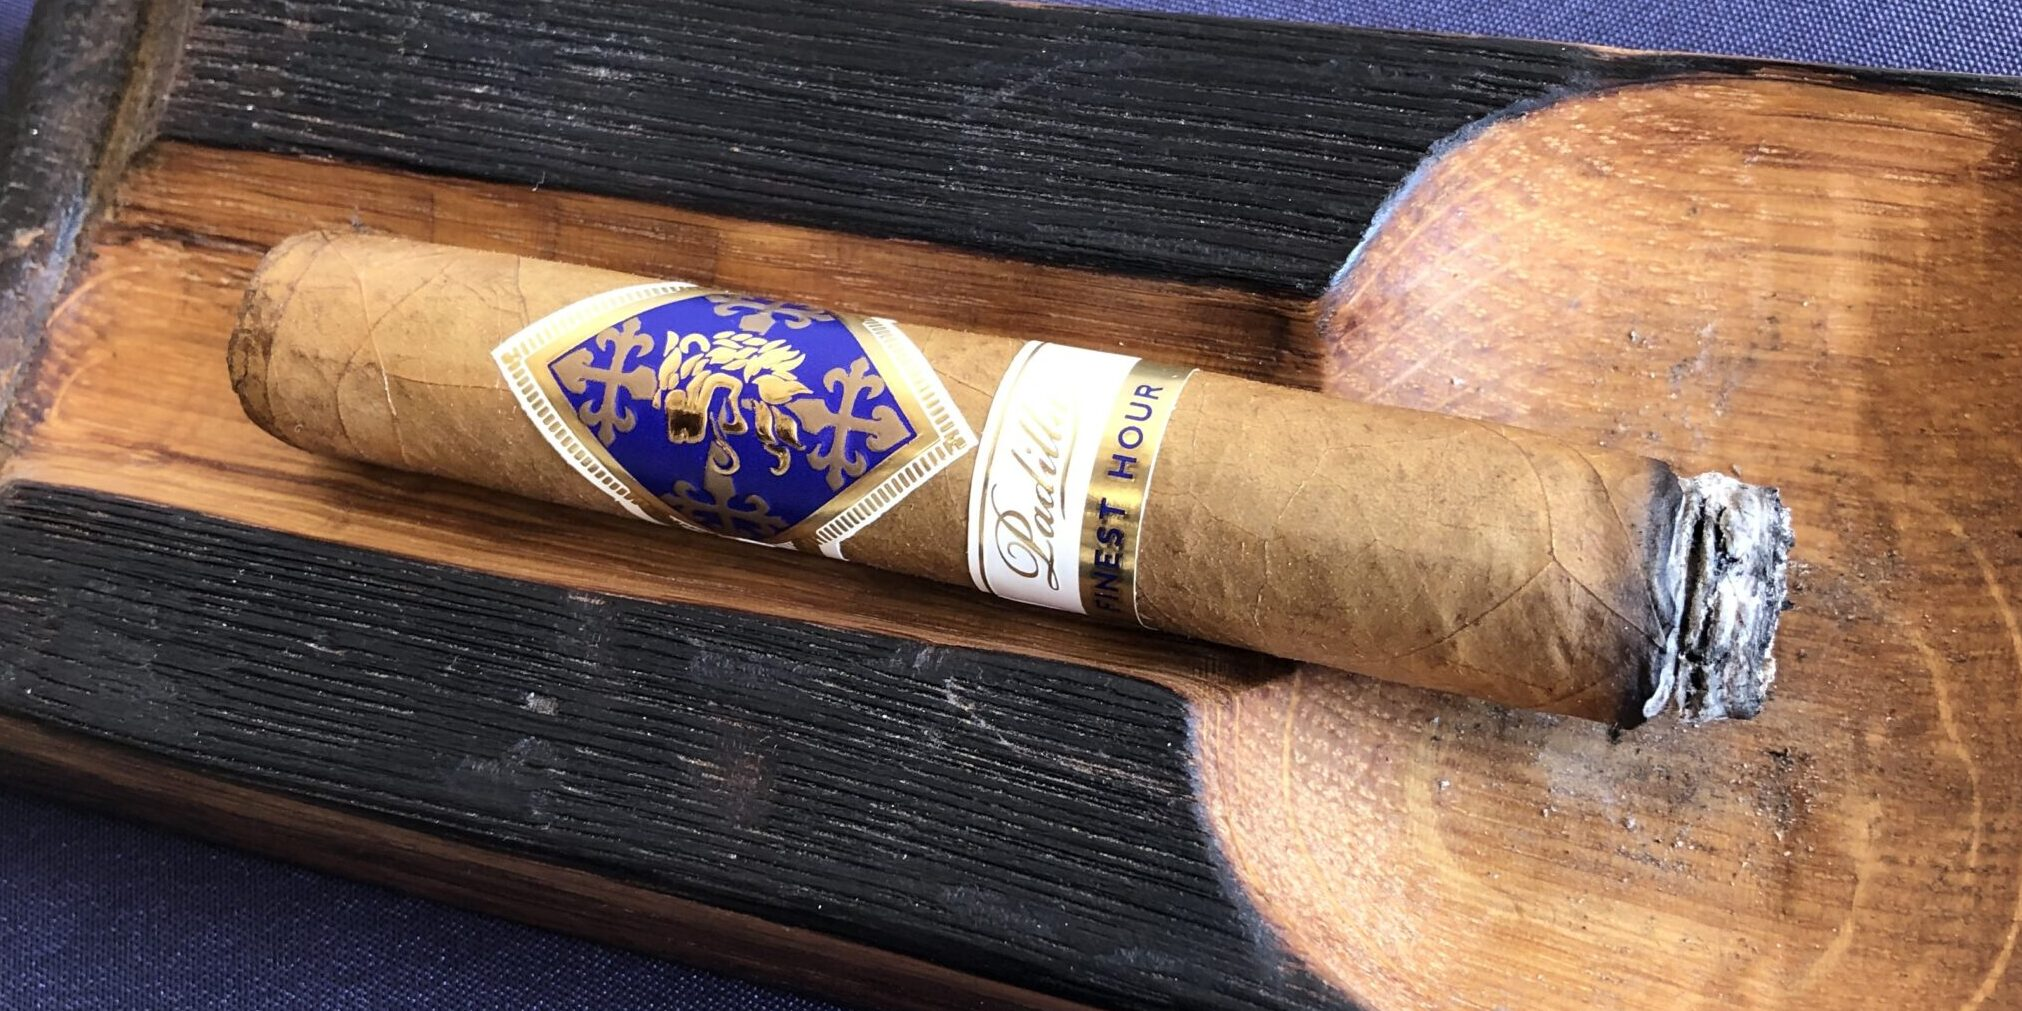 You are currently viewing Padilla Finest Hour Connecticut Robusto Cigar Review